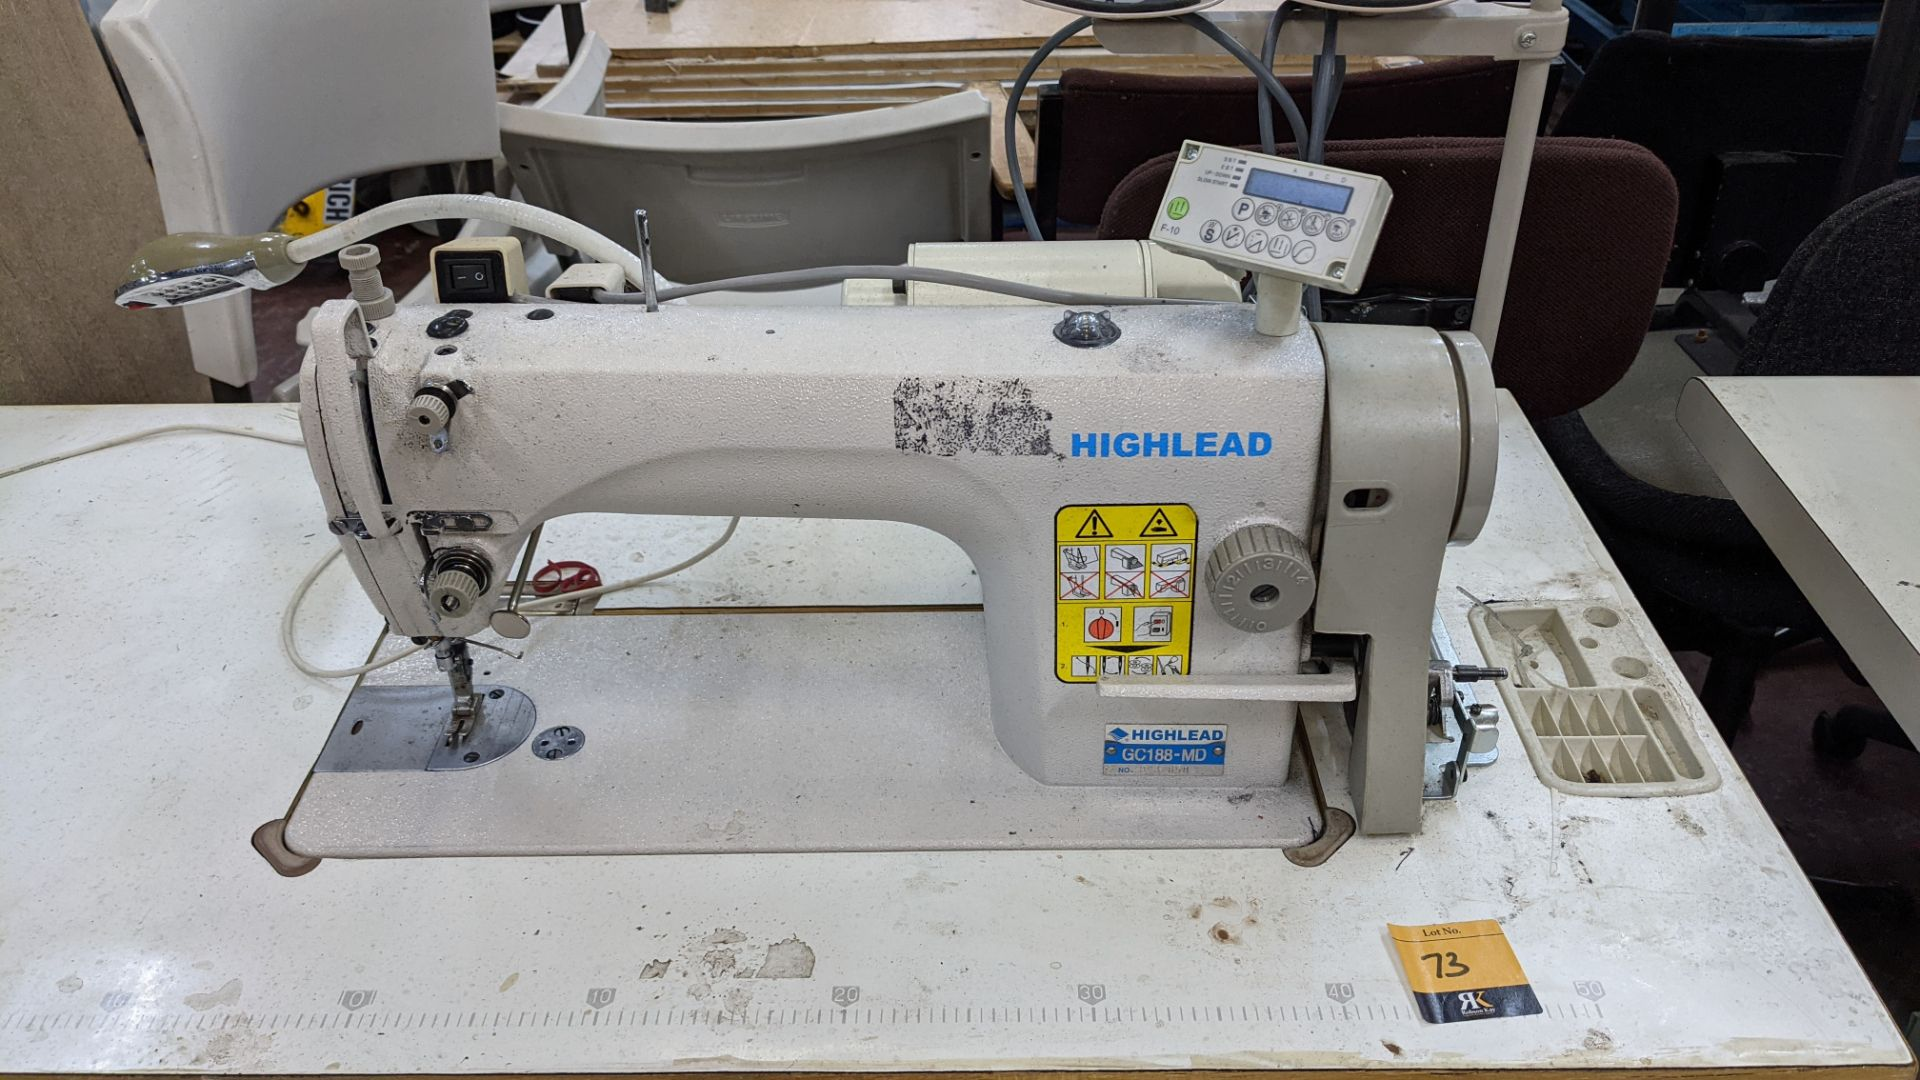 Highlead model GC188-MD sewing machine with model F-10 digital controller - Image 6 of 16